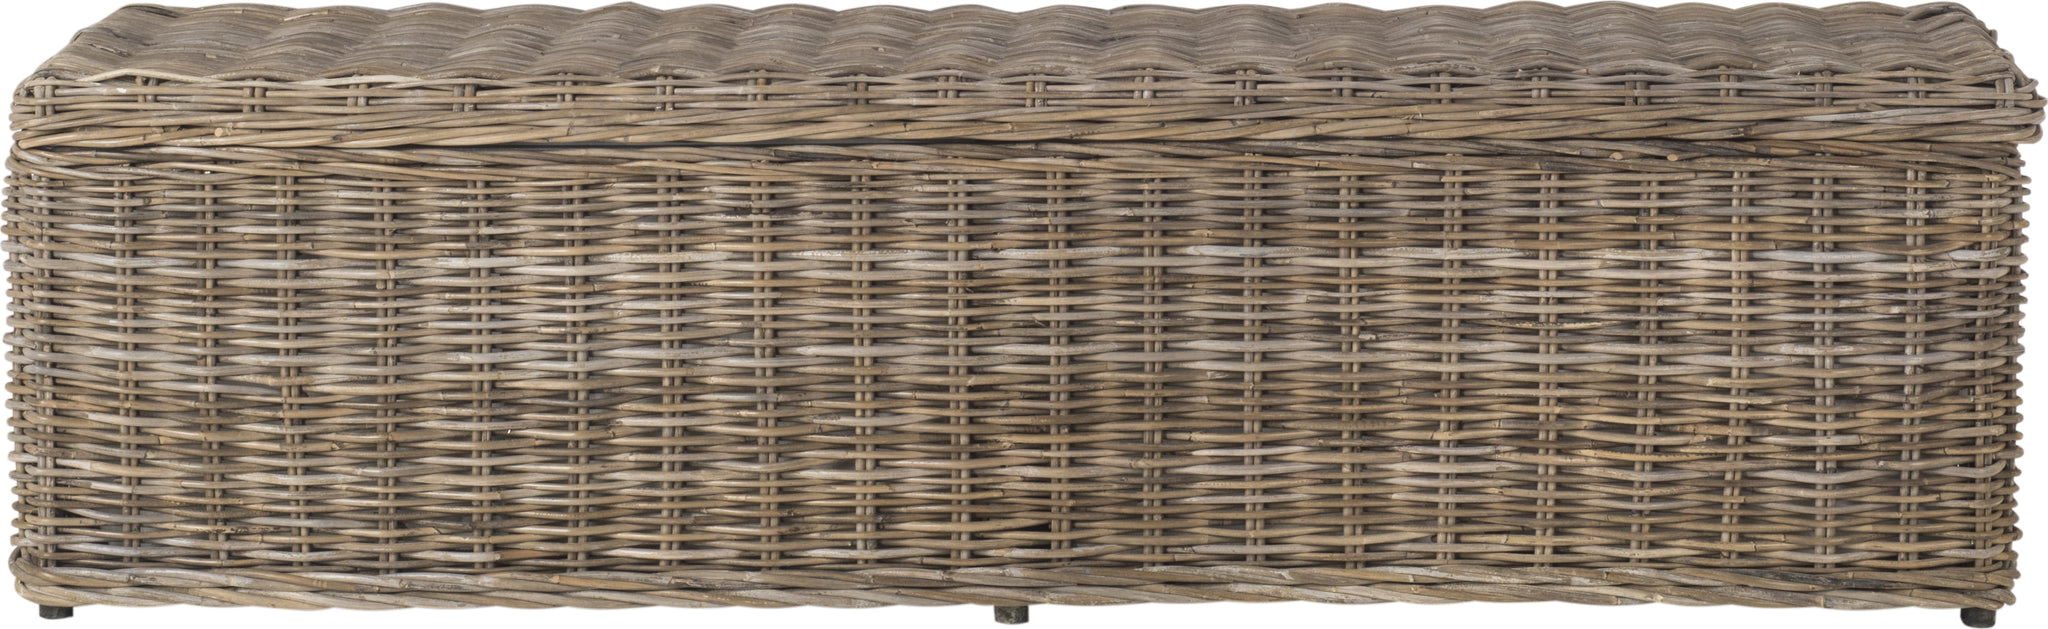 Safavieh Caius Wicker Bench With Storage Natural Furniture main image